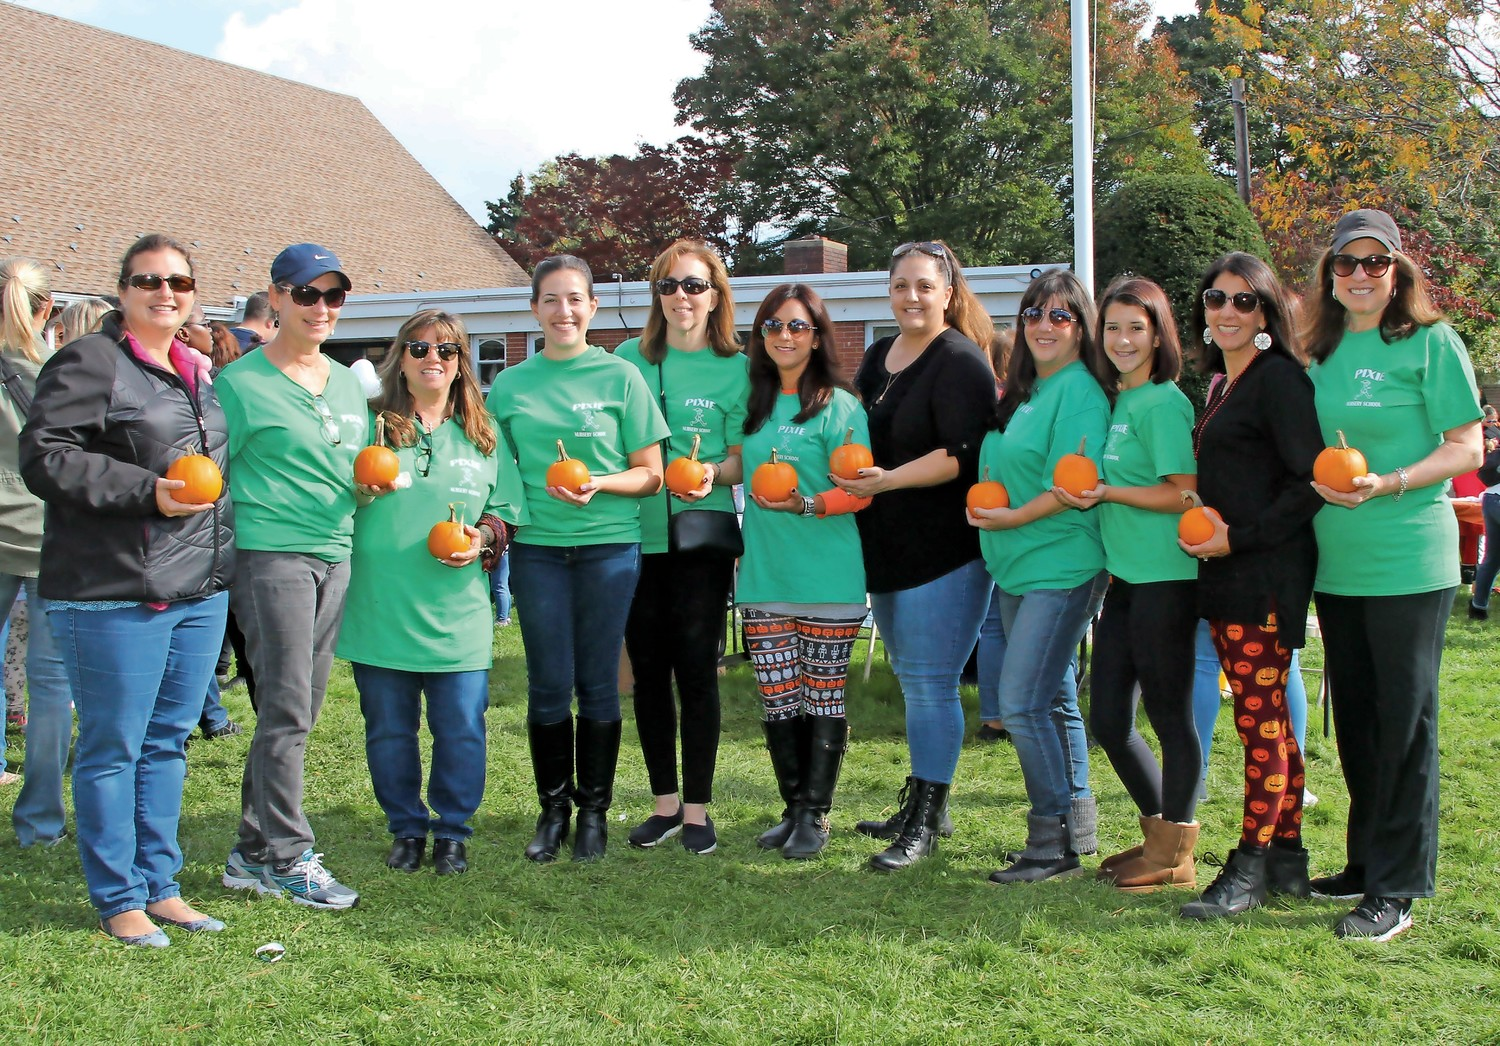 Volunteers and parishioners at Wantagh Memorial Congregational Church raised money for hurricane victims in Puerto Rico at its harvest fair on Oct. 28. From left, Jaime Becker, Linda Arbitelli, Trudy Chen, Nicole Sobey, Helen Battillo, Jennifer Gaglio, Theresa Gavilanes, Renée Amatulli, Nicole Amatulli, Dina Ciaramella and Sara Vasilakos, director of the Pixie Nursery School.